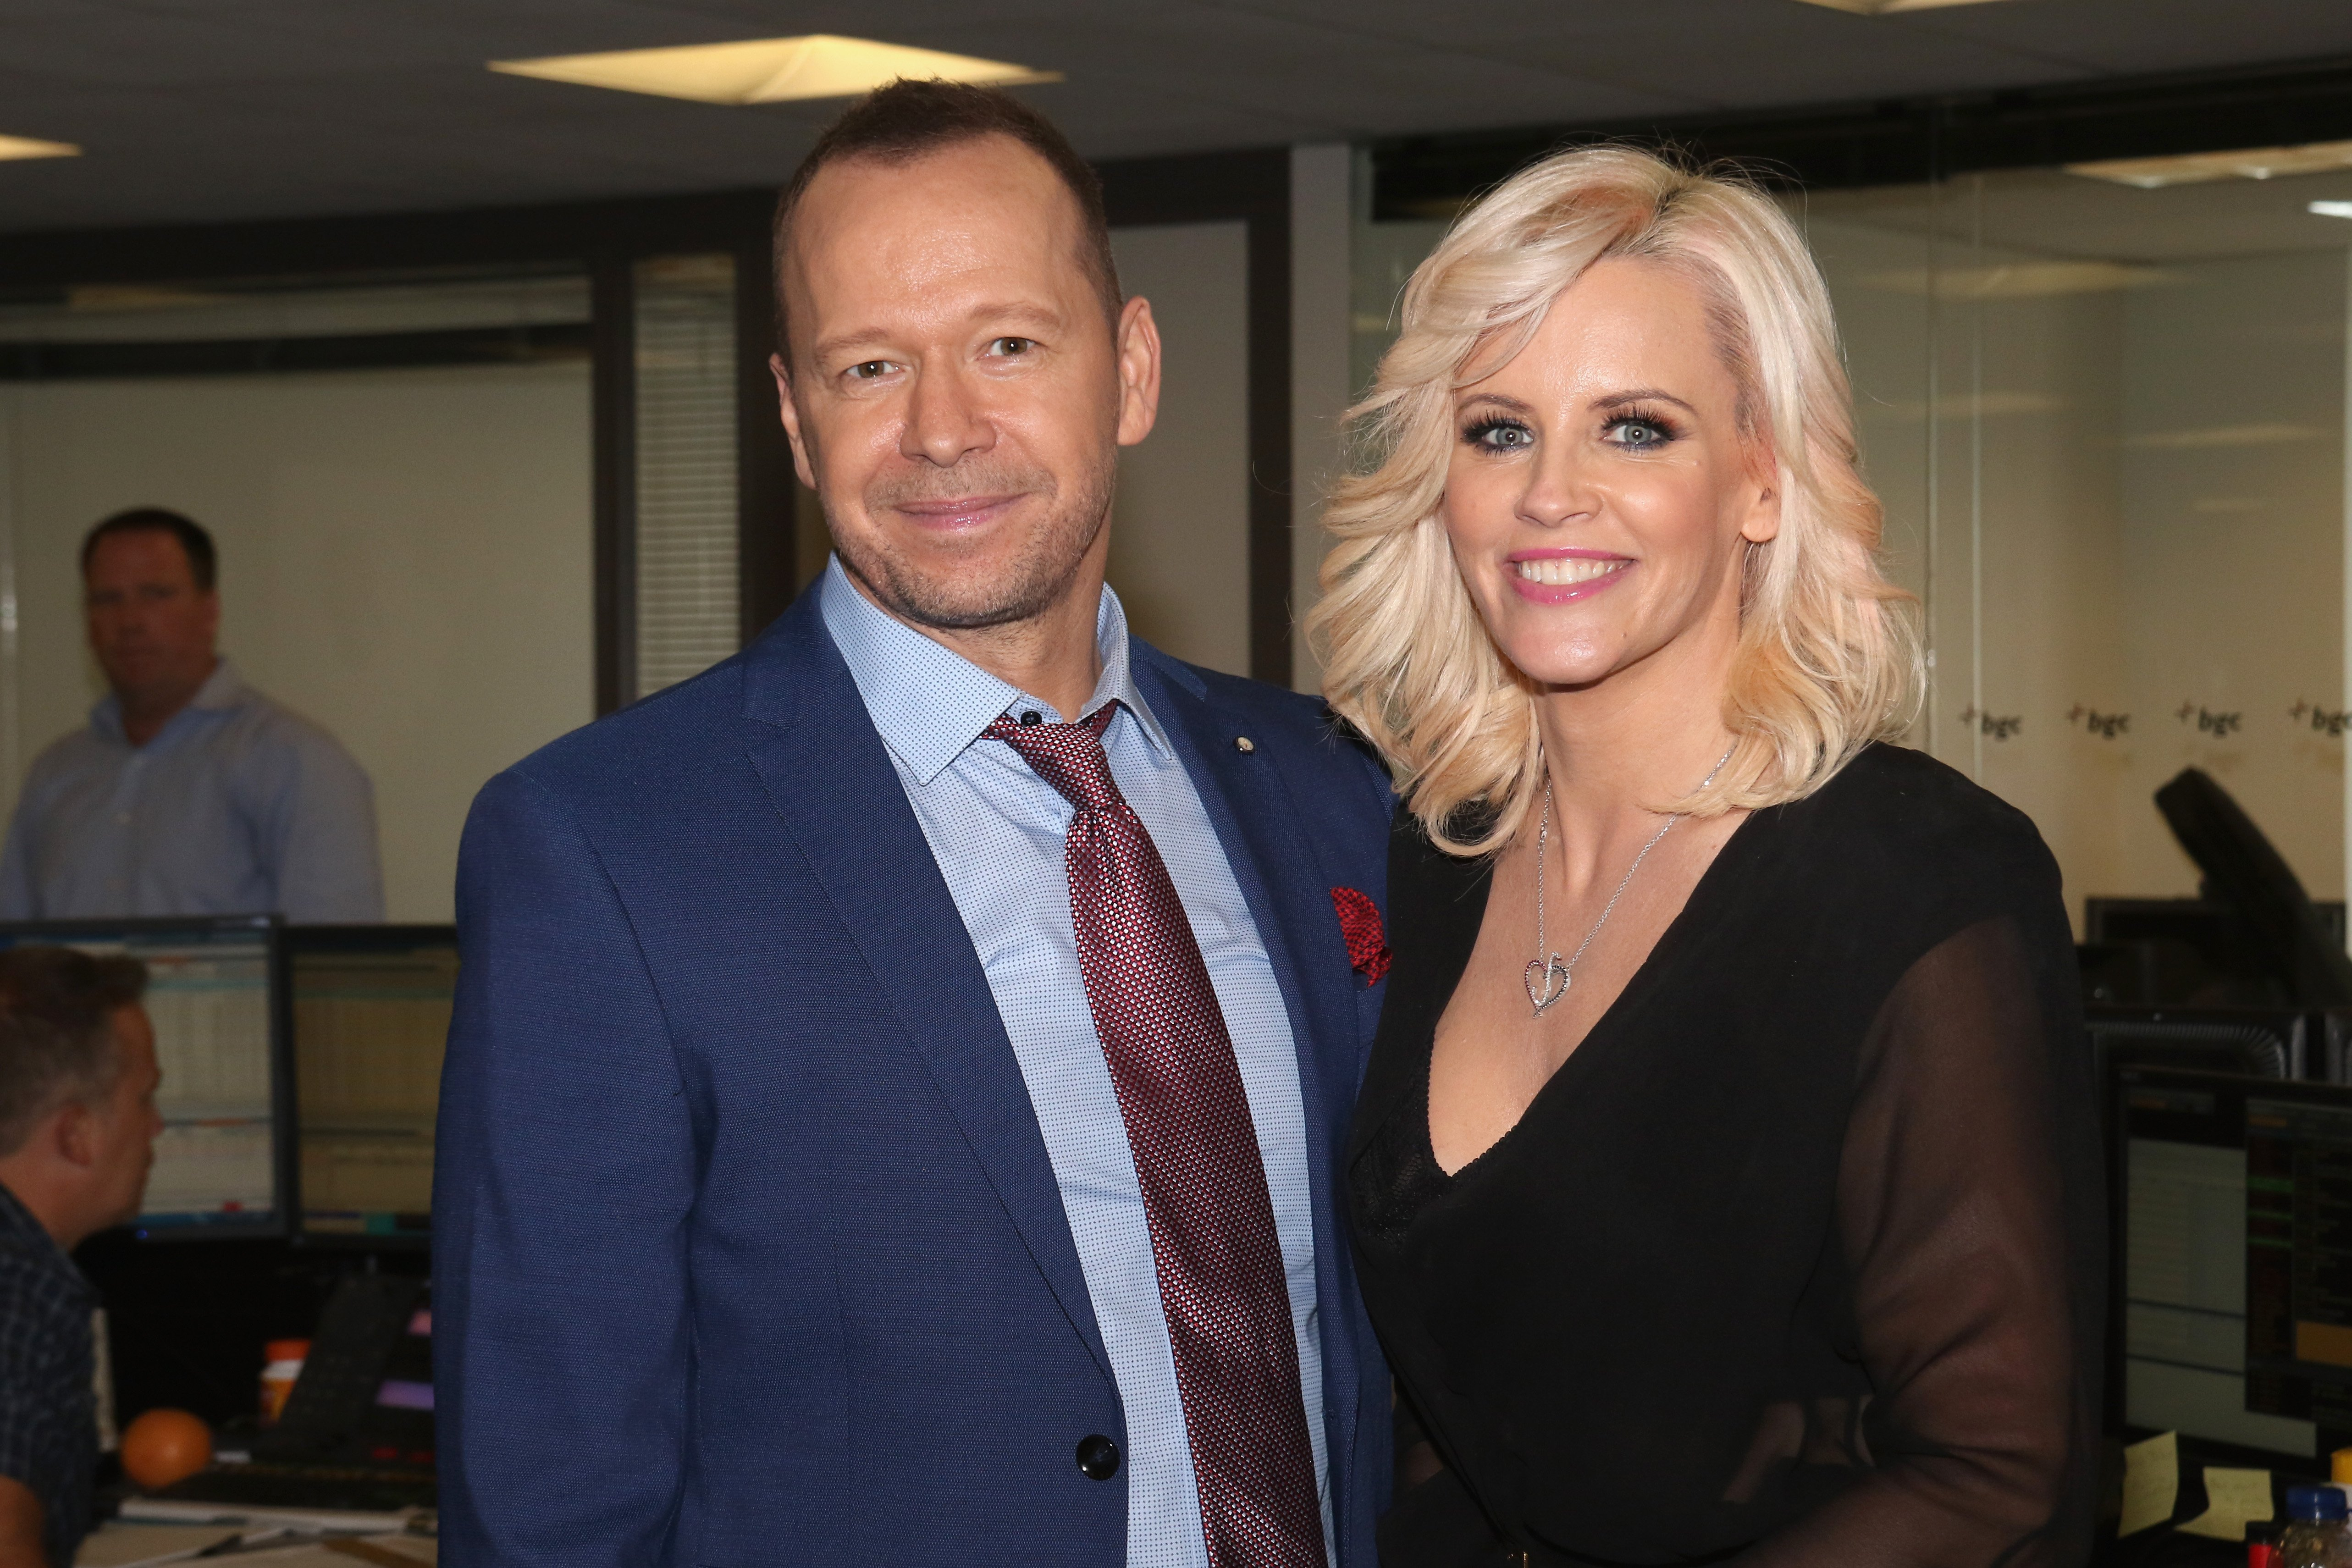 Donnie Wahlberg and Jenny McCarthy attend the Annual Charity Day in New York City on September 11, 2015 | Photo: Getty Images